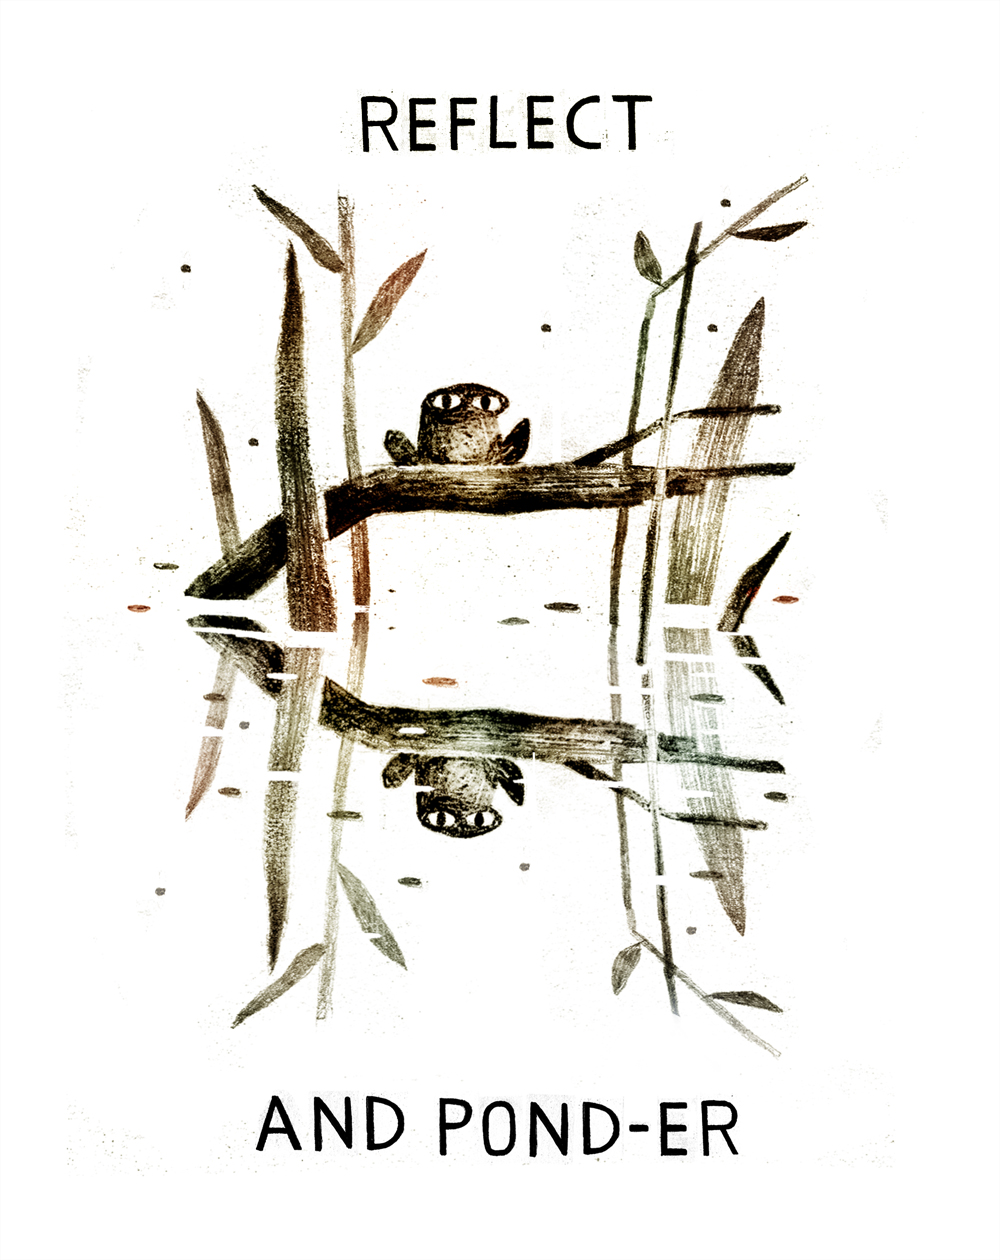 Ponder & Reflect Frog (with text), Jon Klassen